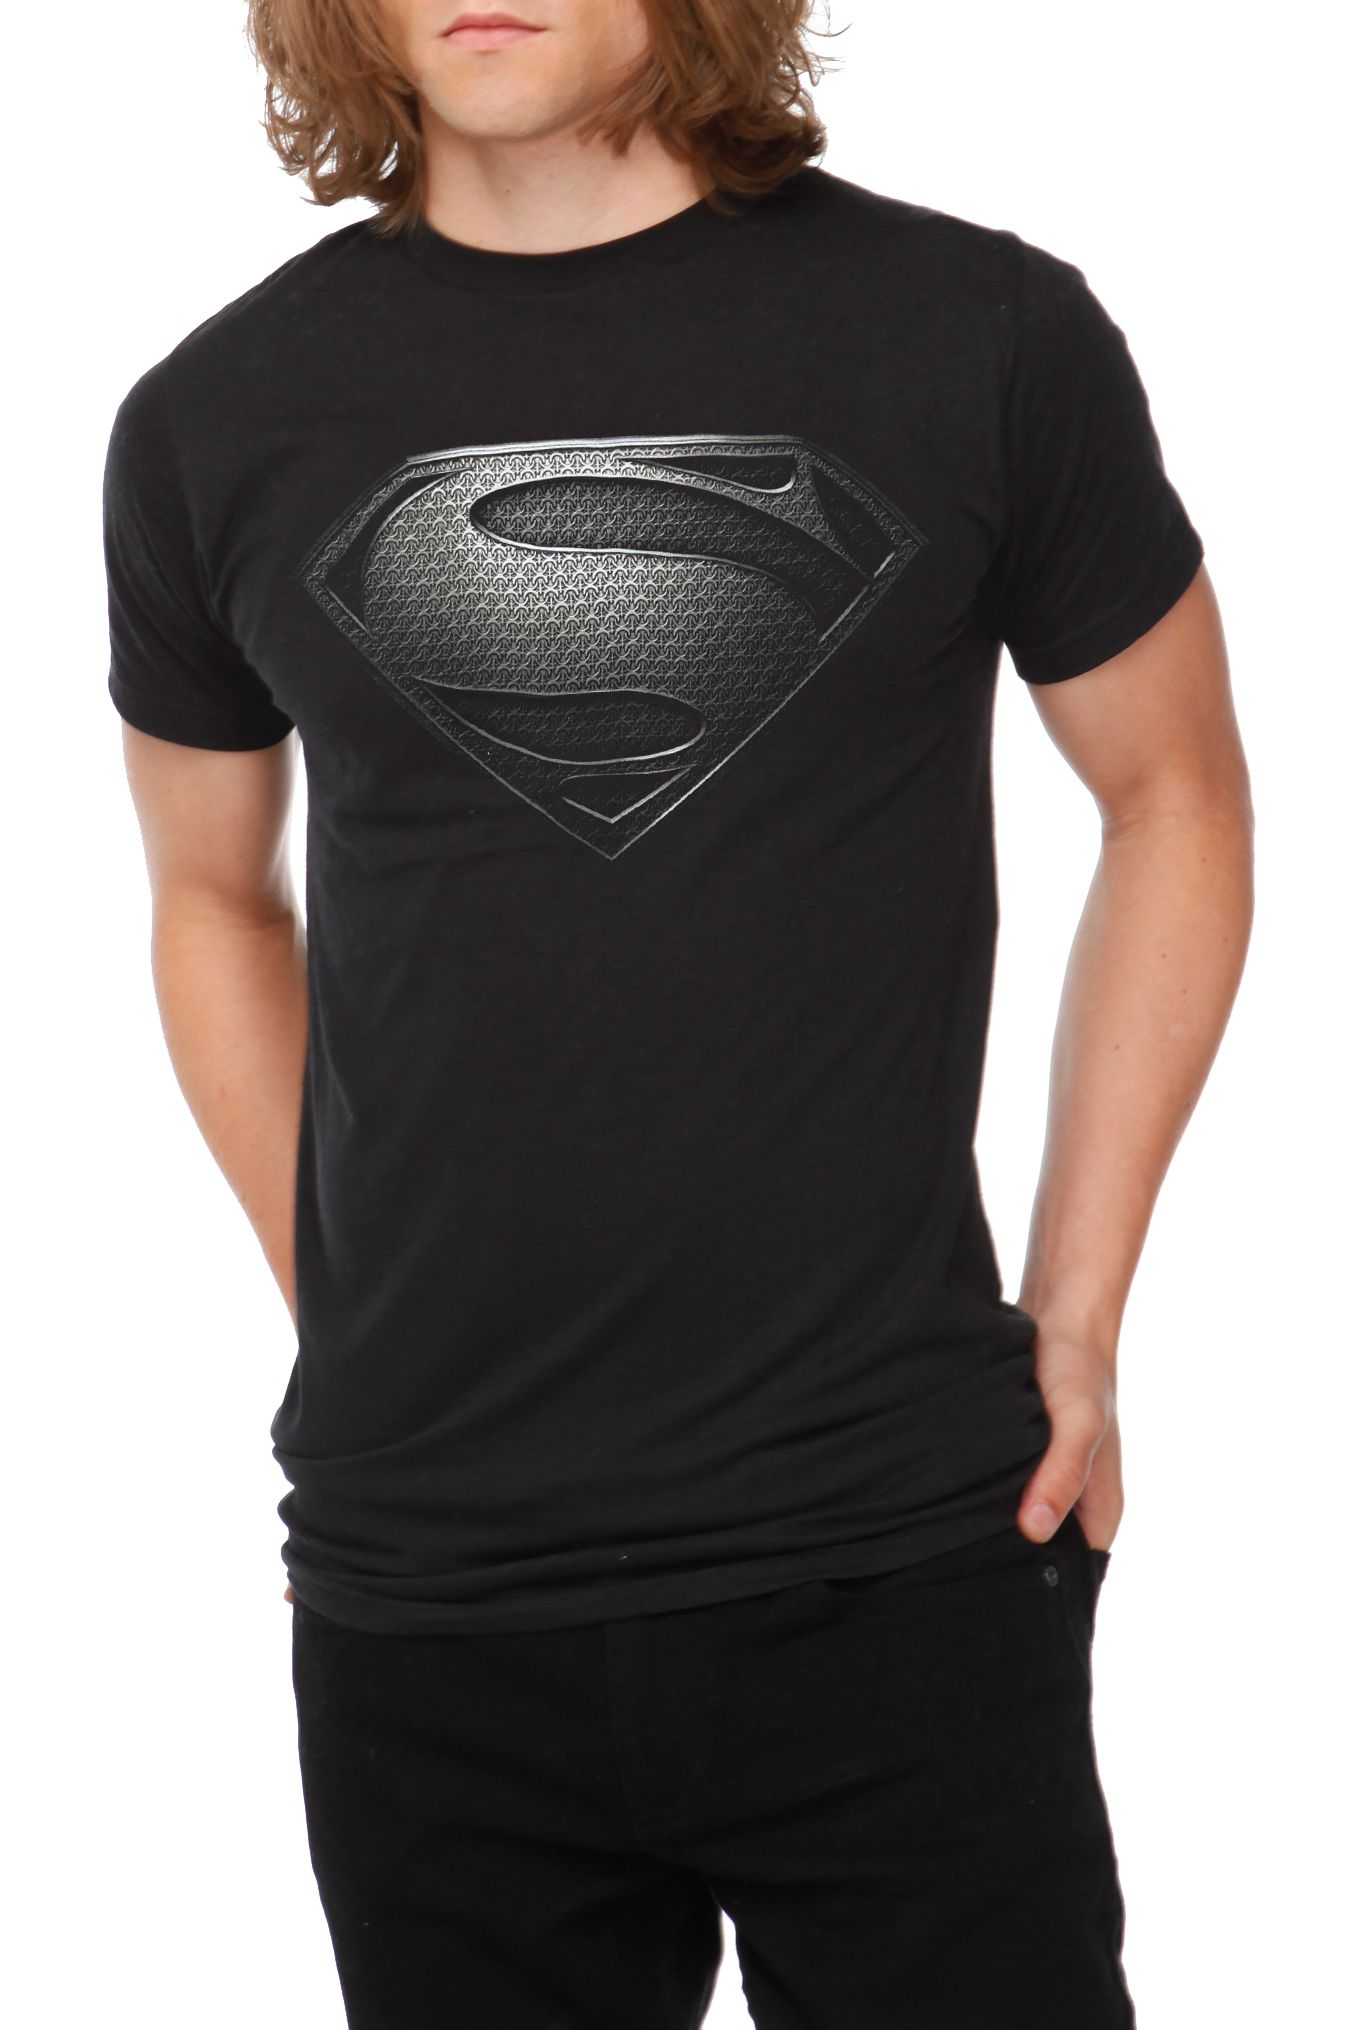 f341bde2c DC Comics Superman Man Of Steel Silver Logo T-Shirt $20.50 | My ...